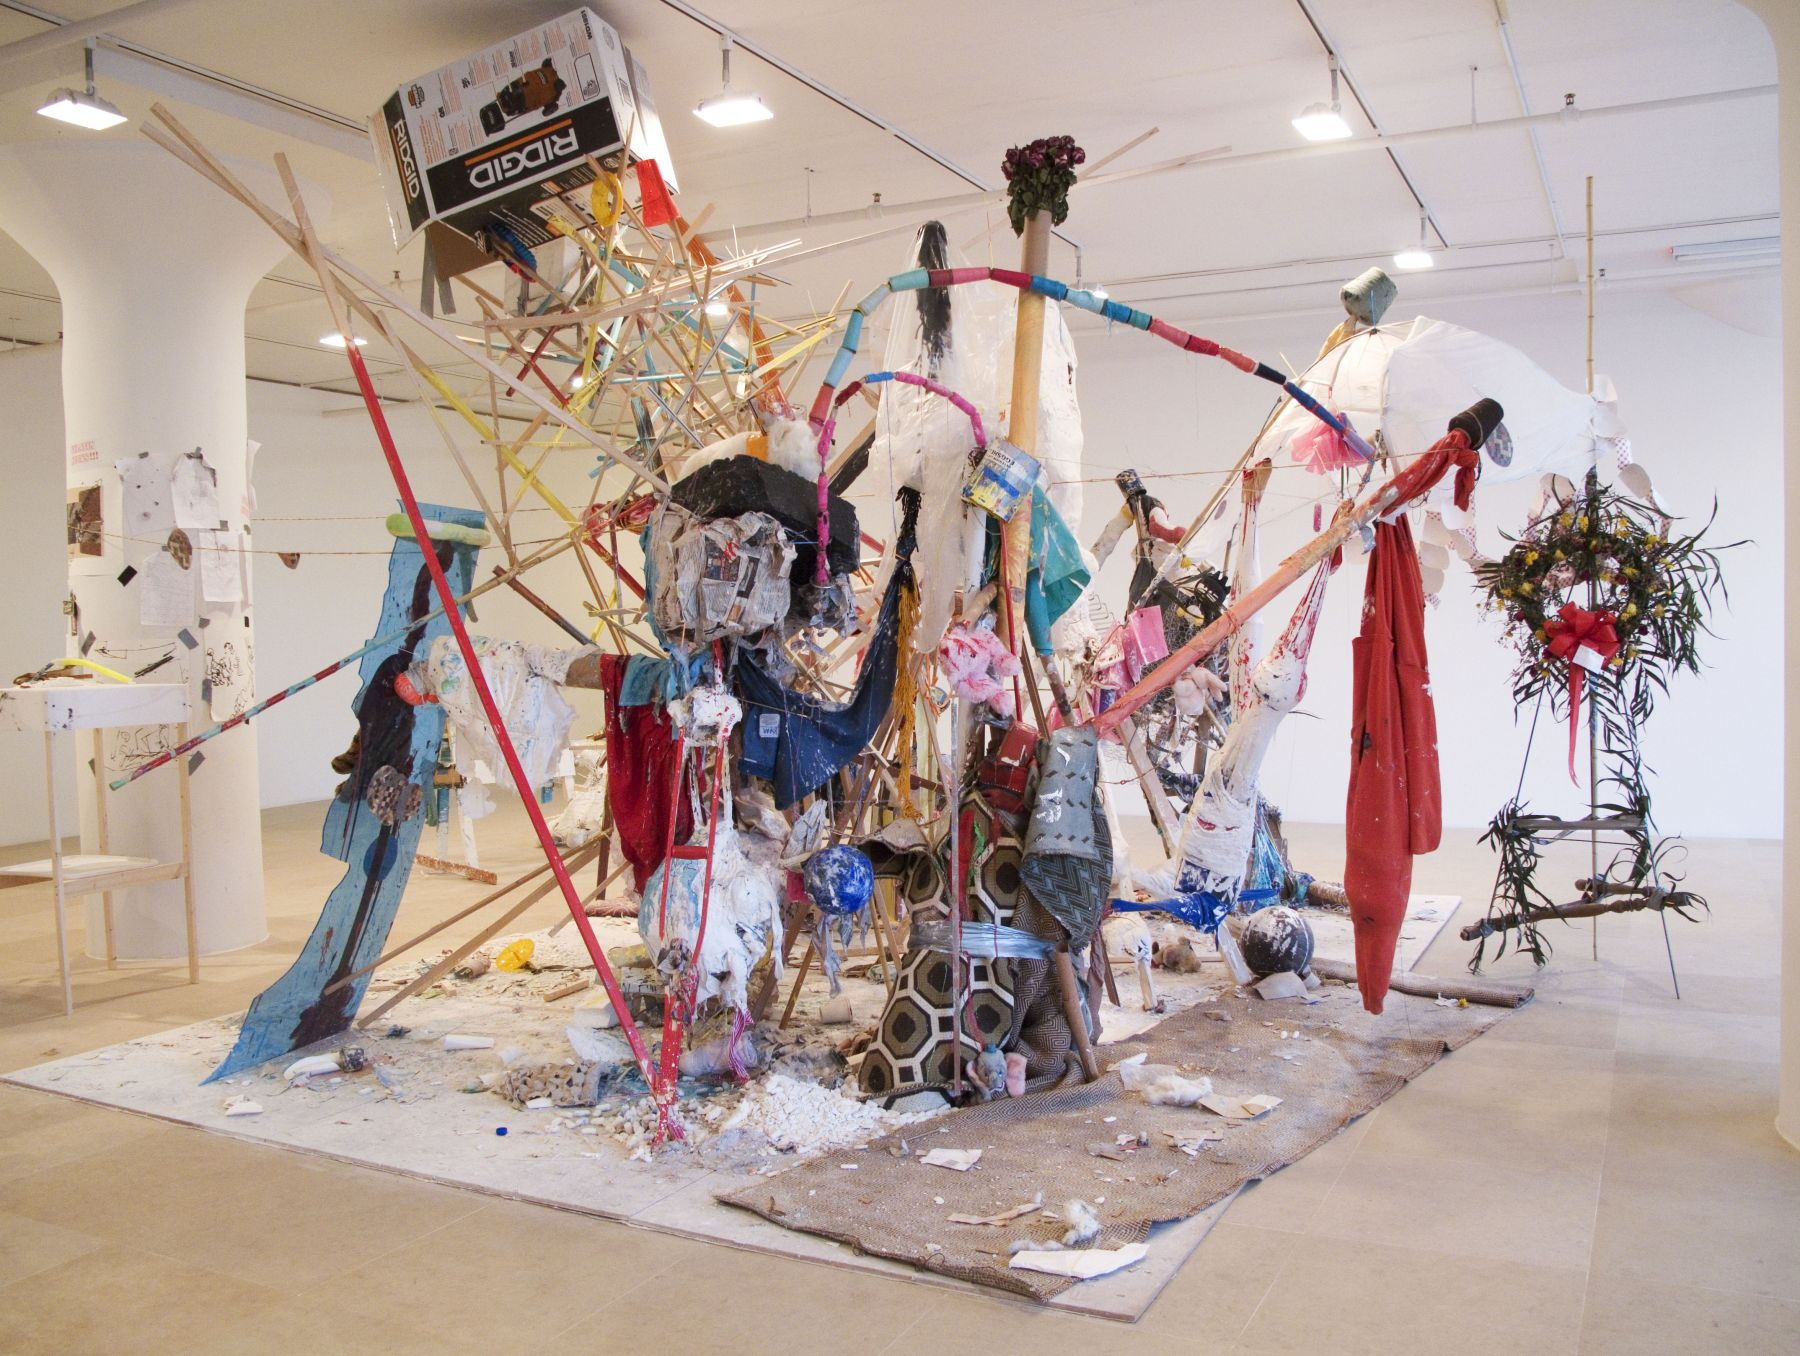 Untitled, 2010, mixed media, 137 x 267 x 198 inches